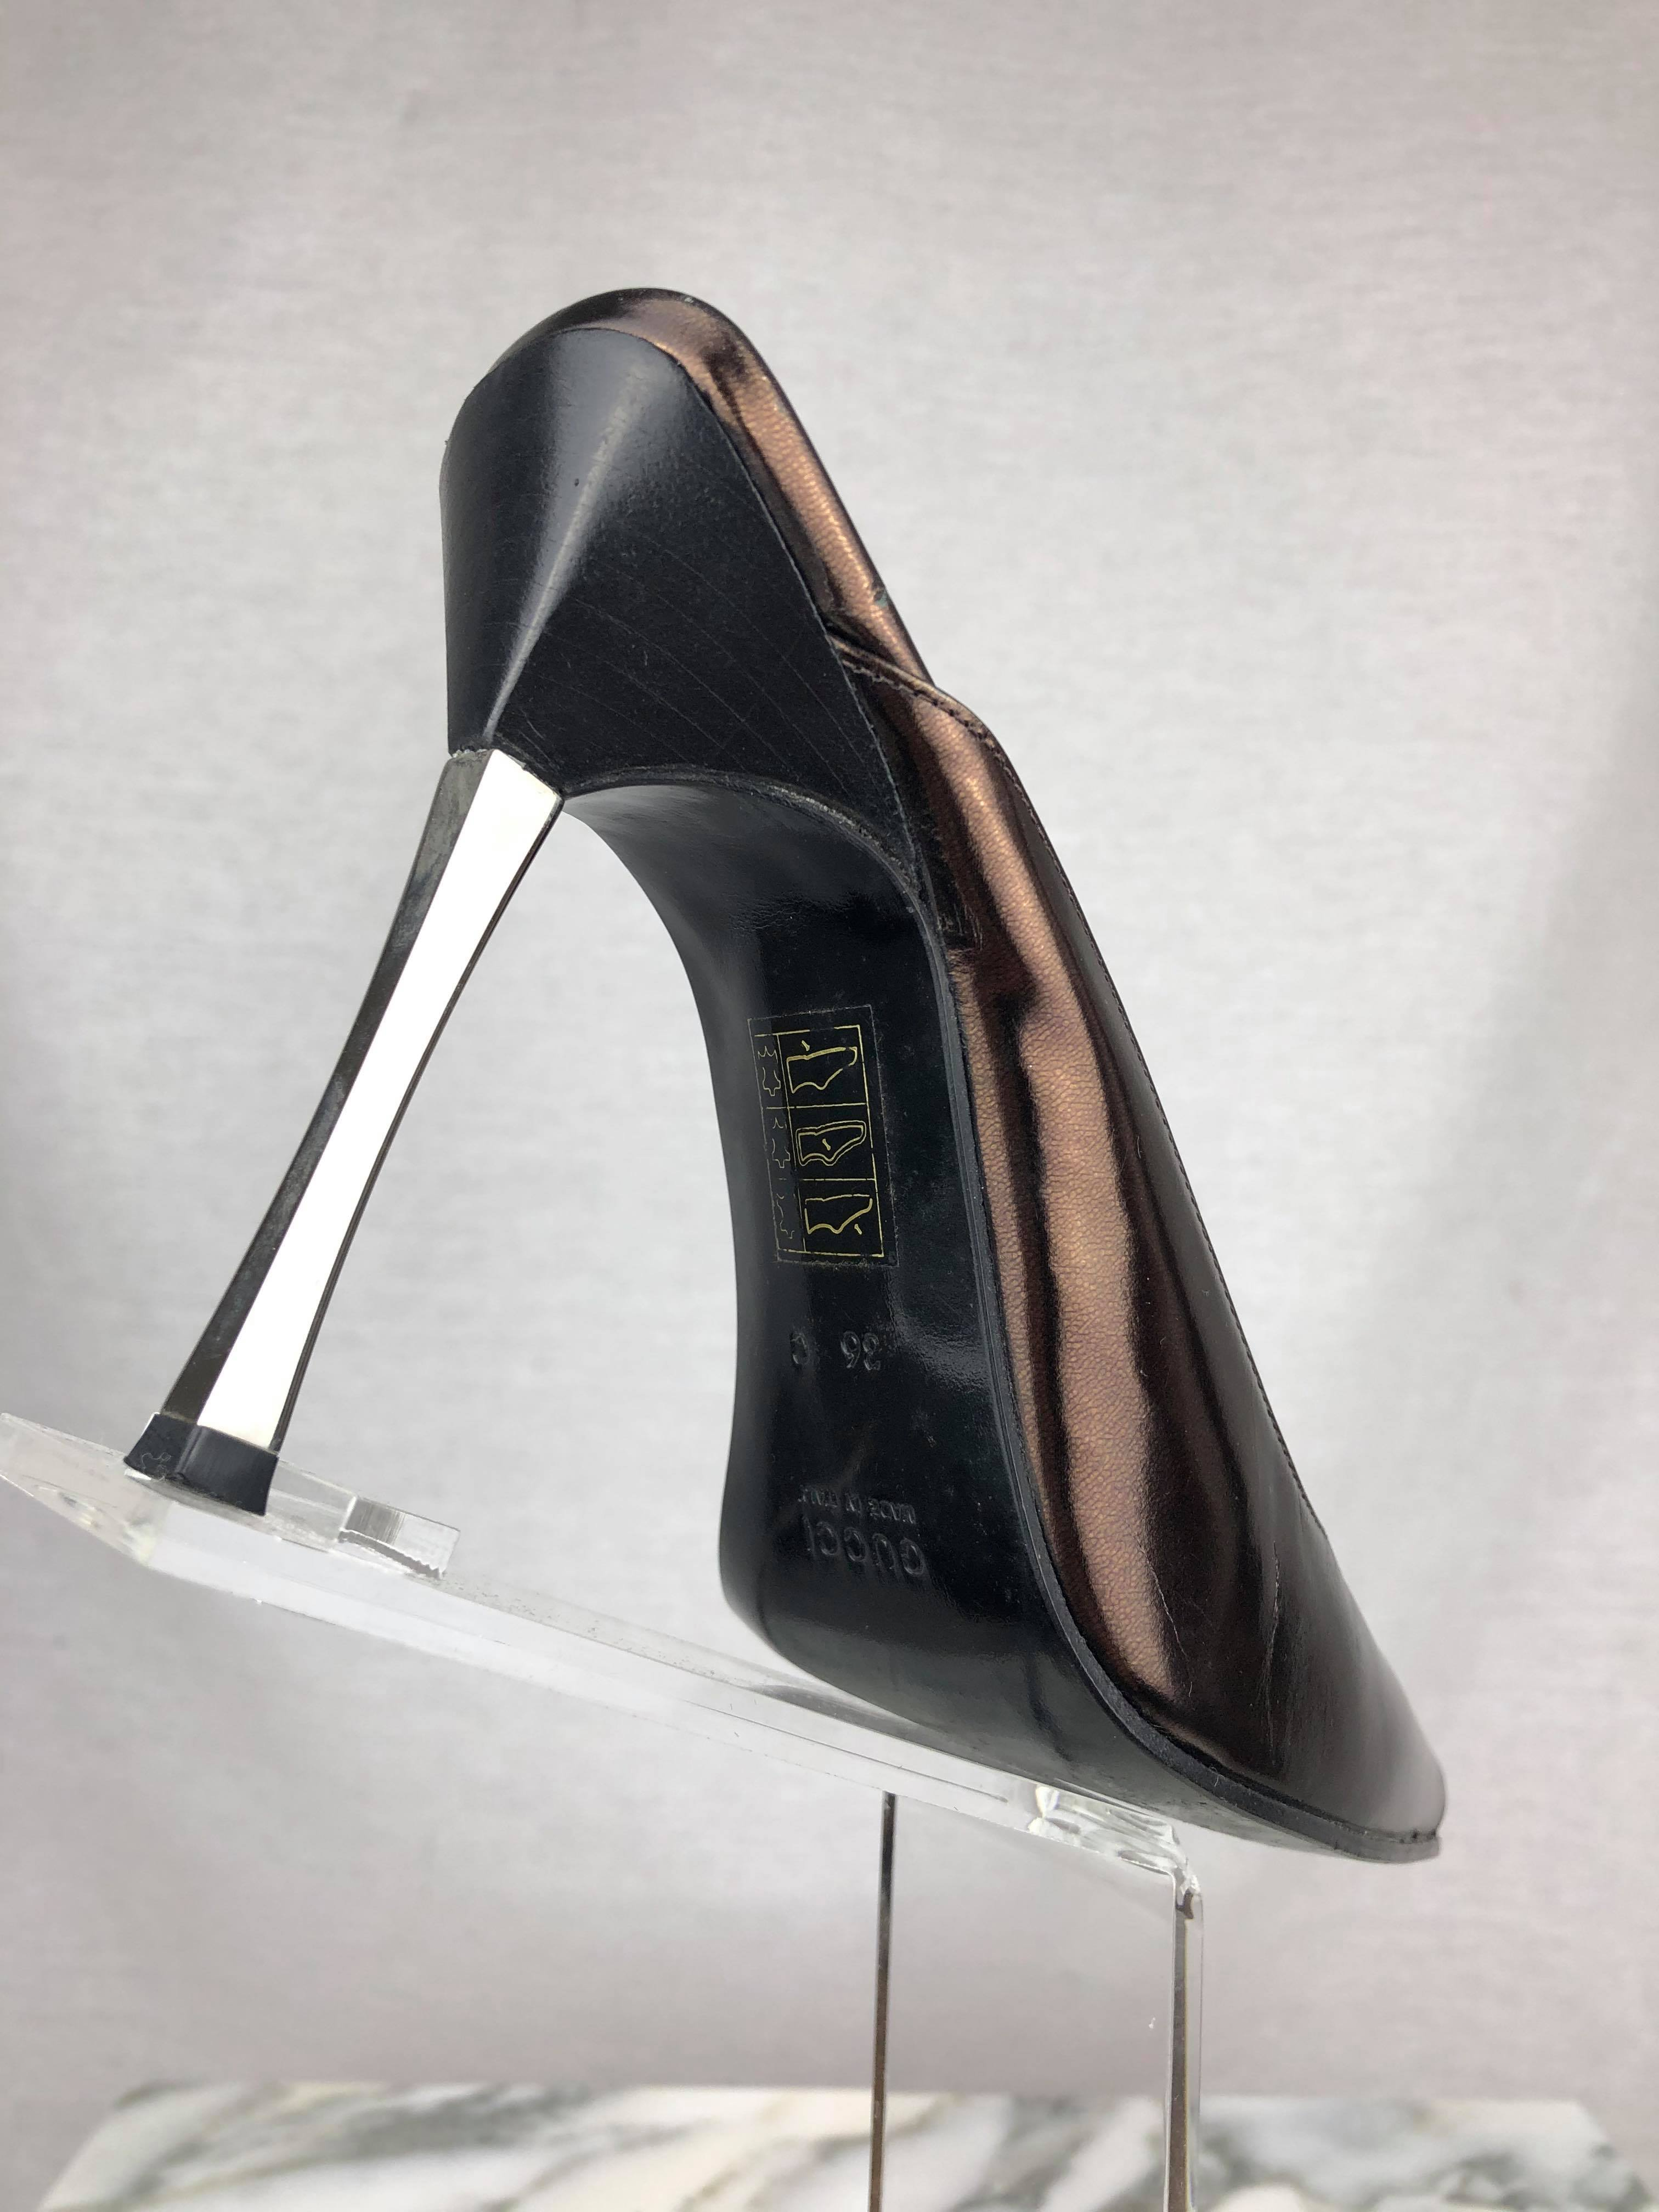 Gucci by Tom Ford metallic heel mules from Fall 1997